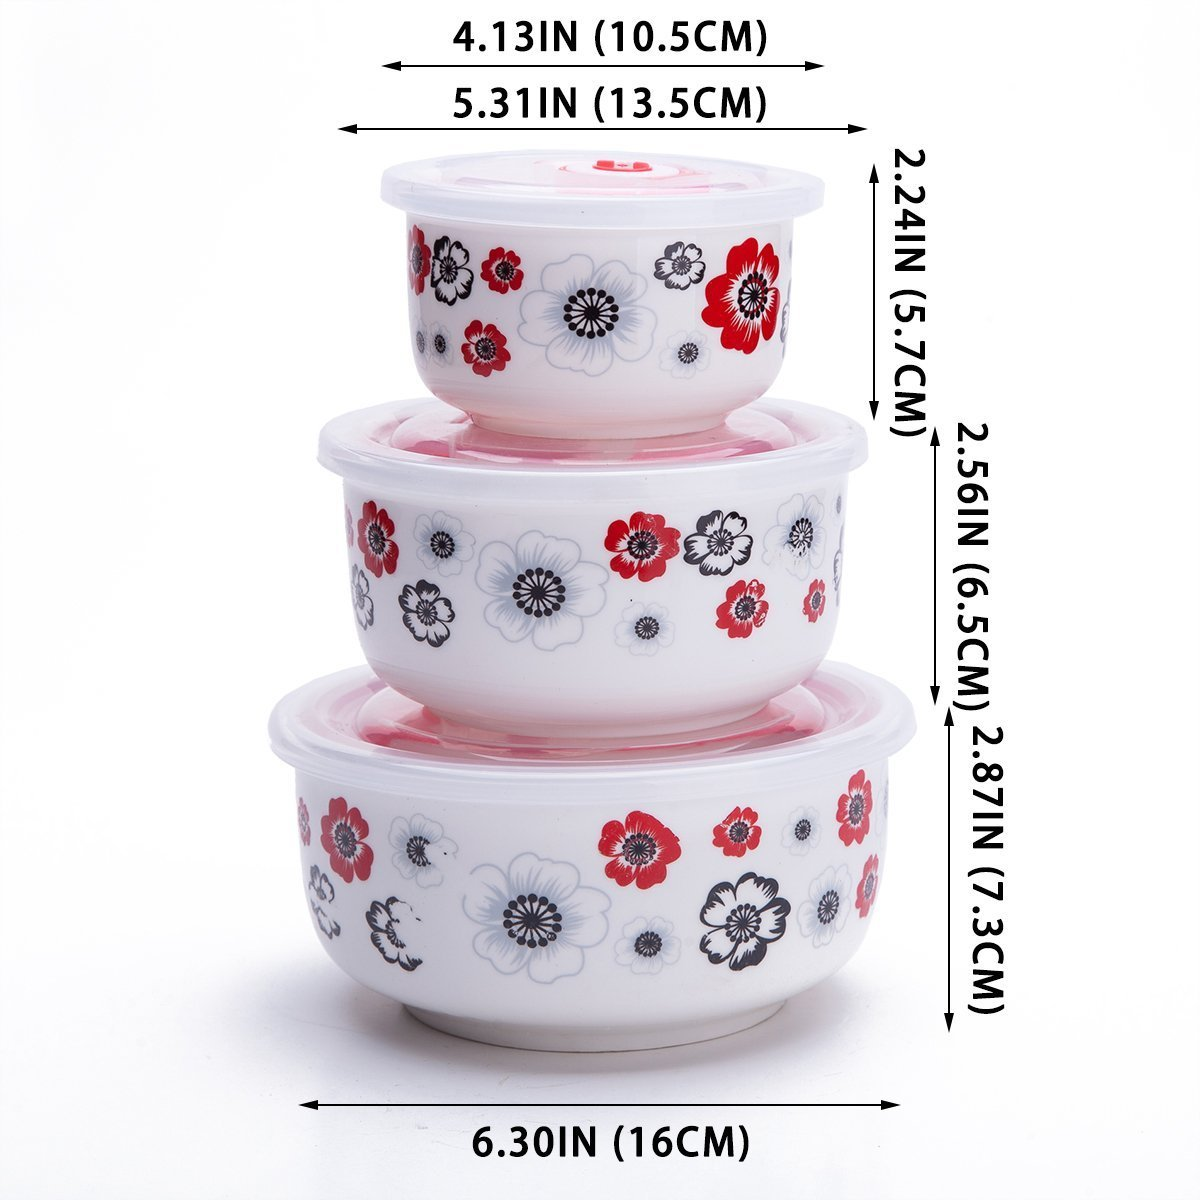 618c361a819f Amazon.com: Set Of 3 Ceramic Lunch Bento Boxes / Food Carrier / Food ...